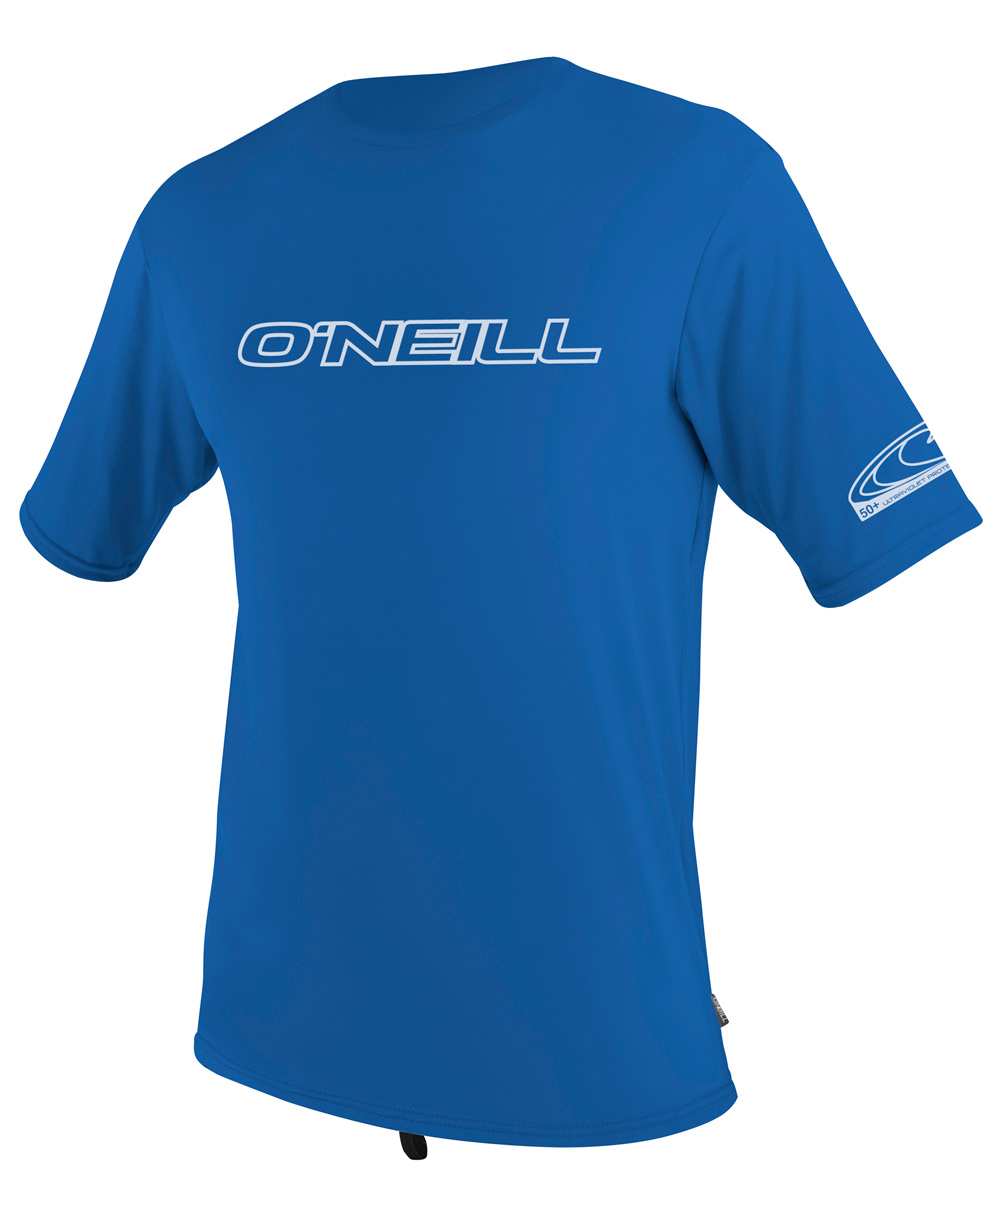 Surf O'Neill quality at value-driven prices, the Basic Skins offers 50  UV Protection with the world-renowned O'Neill fit. Cleanly designed graphics complete the package for value-driven customers - $11.95